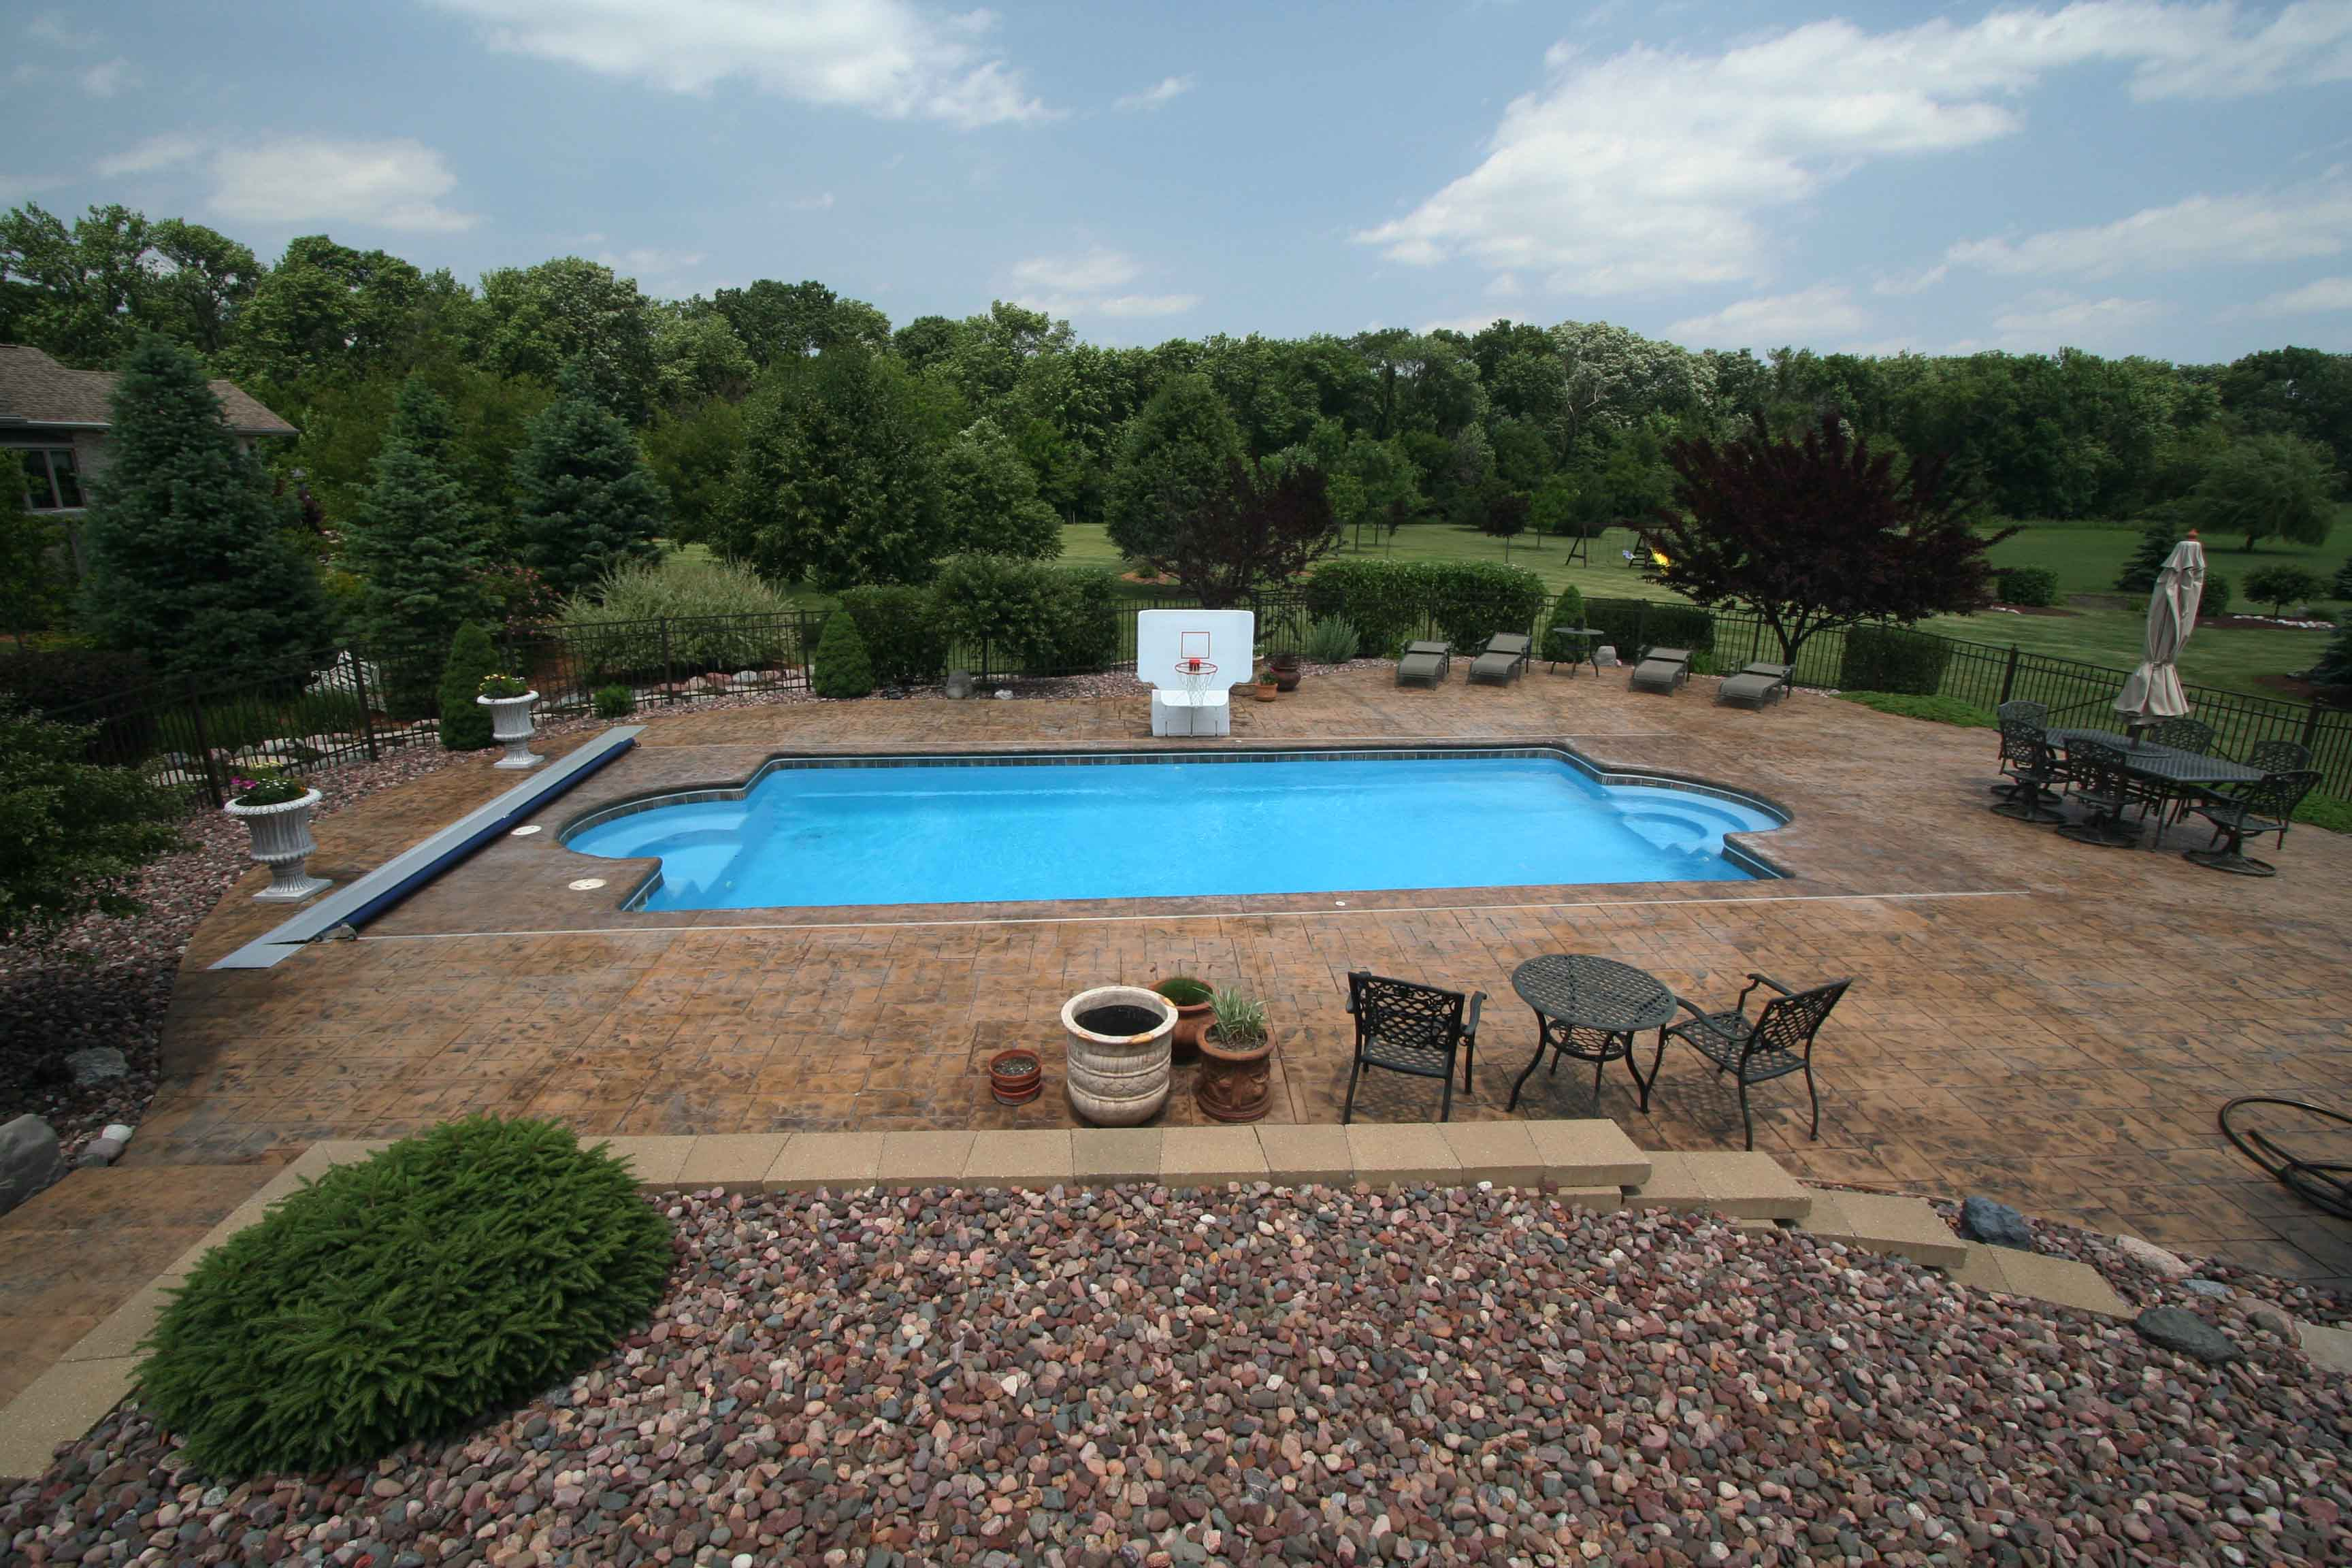 Fiberglass Pool Builder Recommendations Signature Fiberglass Pools Chicago Swimming Pool